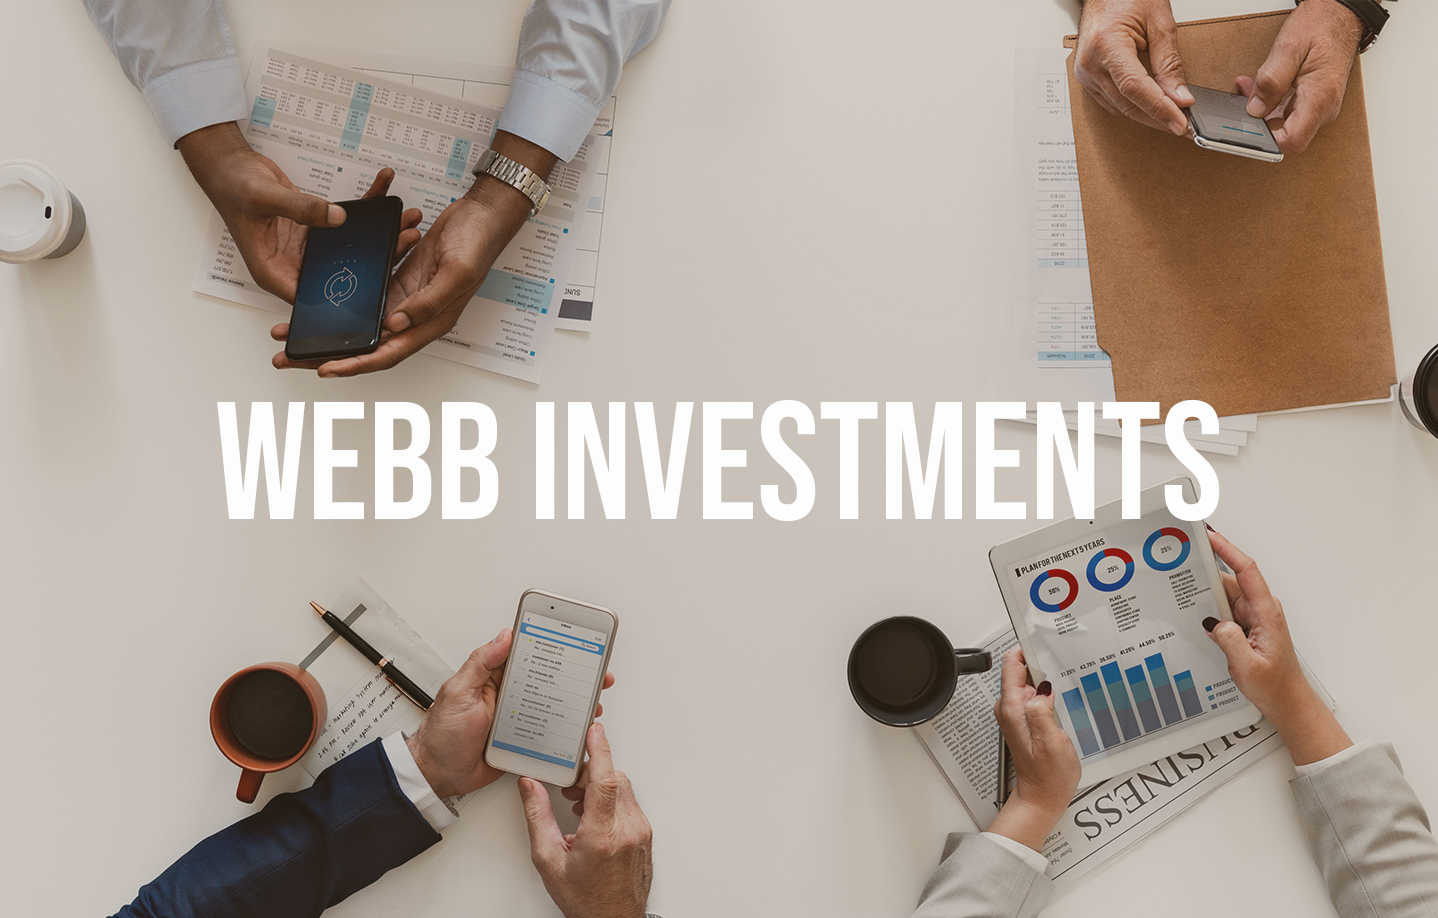 Webb Investments